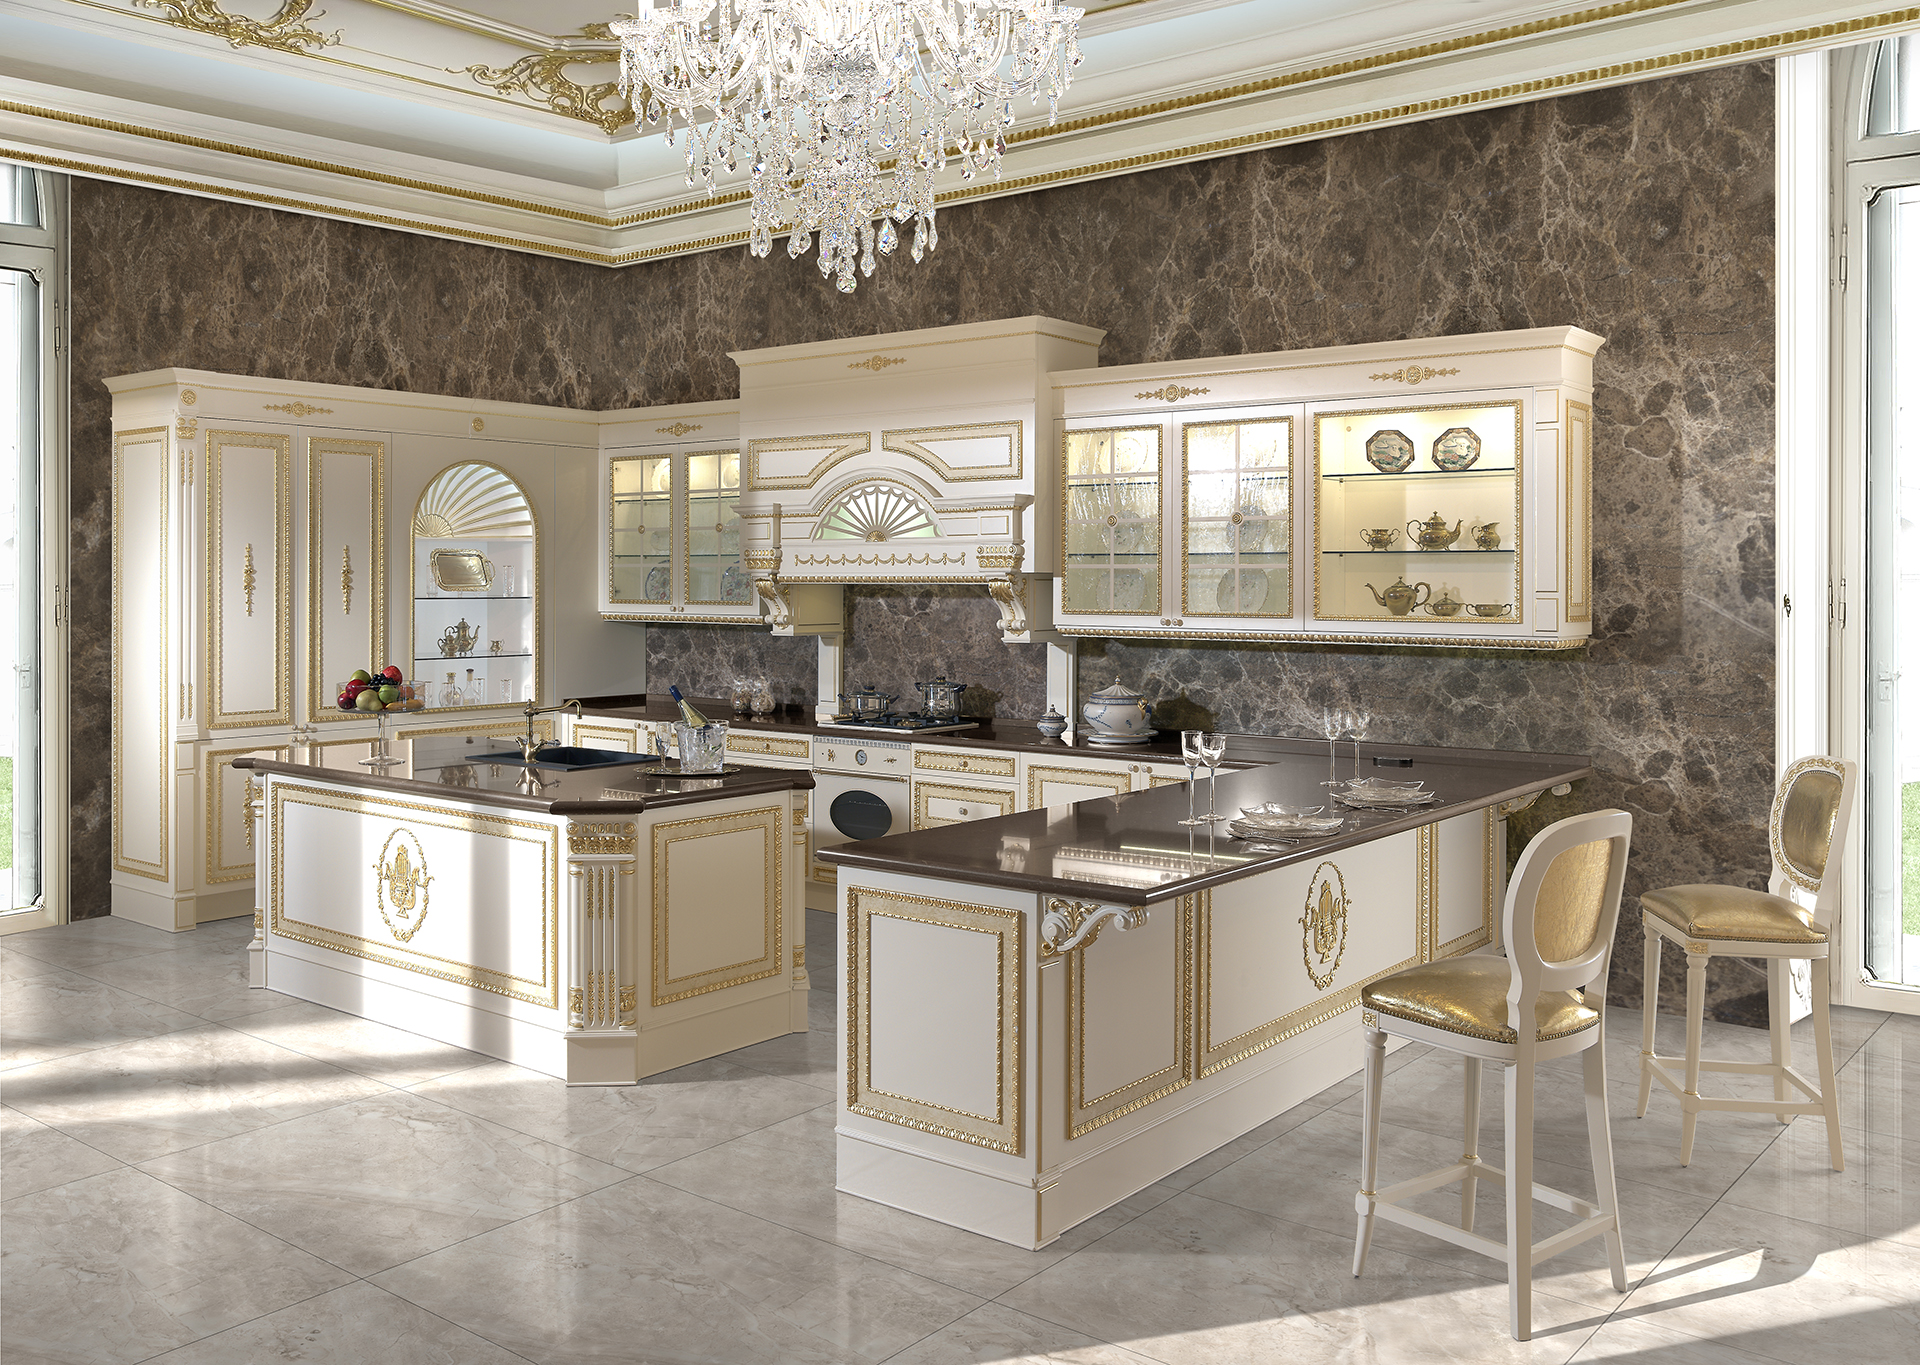 7 Mistakes To Avoid In Your Luxury Kitchen